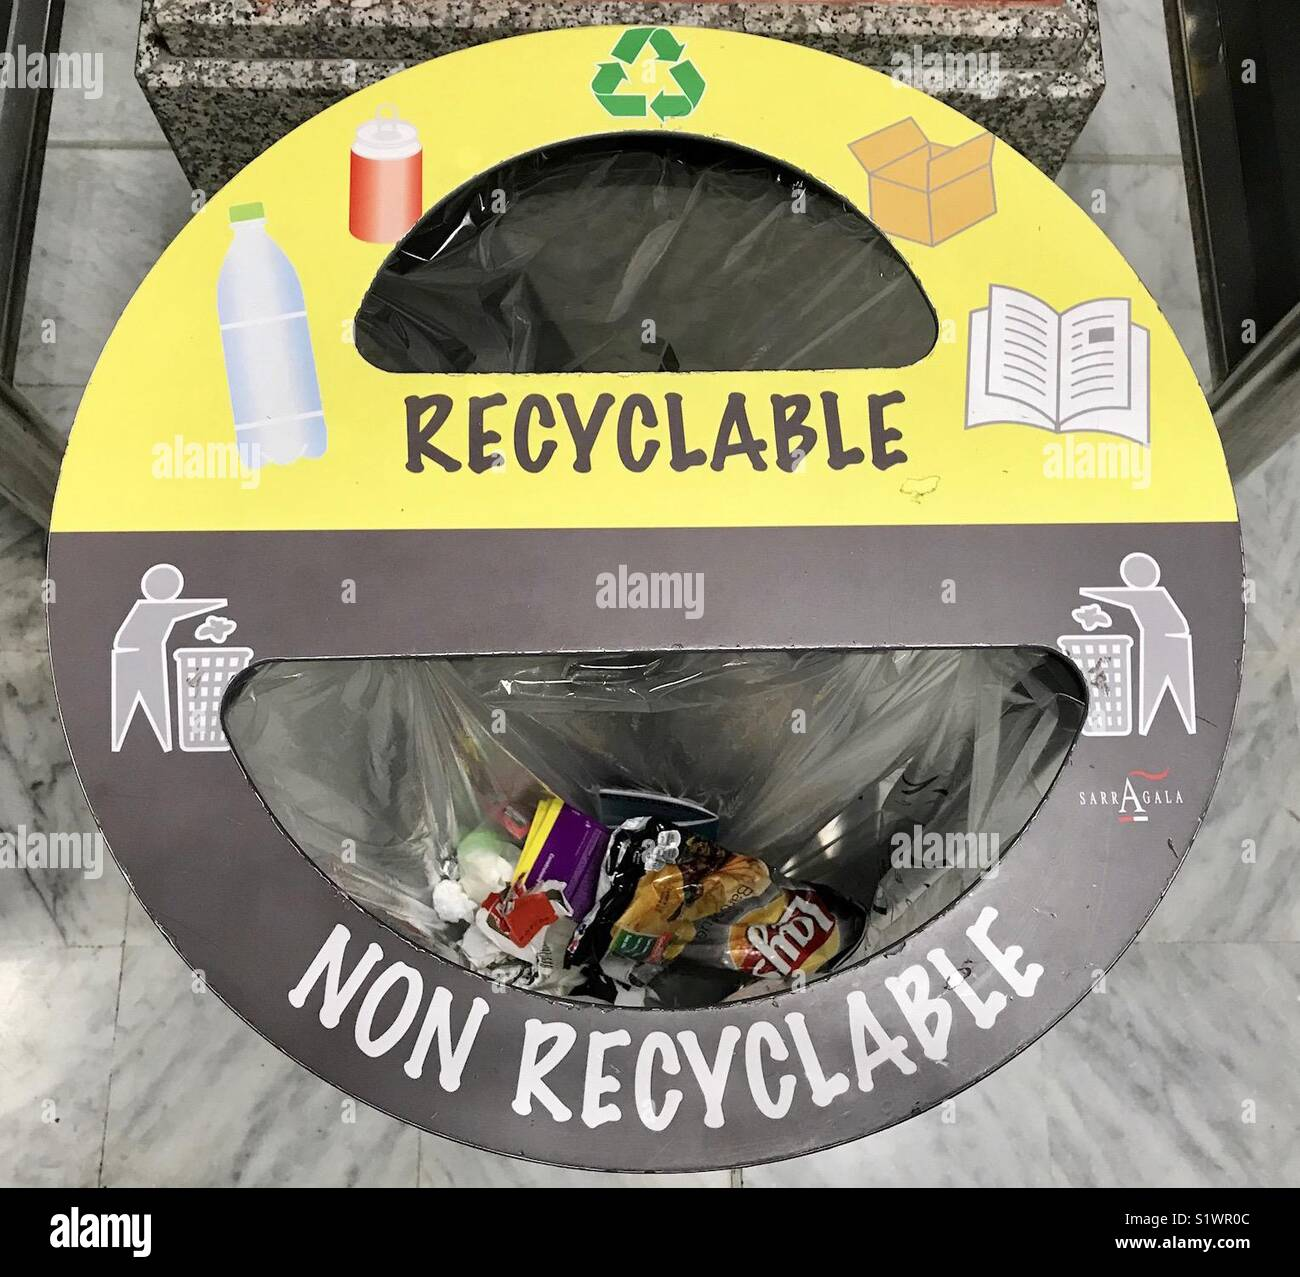 Bin with sections for recyclable and non- recyclable waste - Stock Image